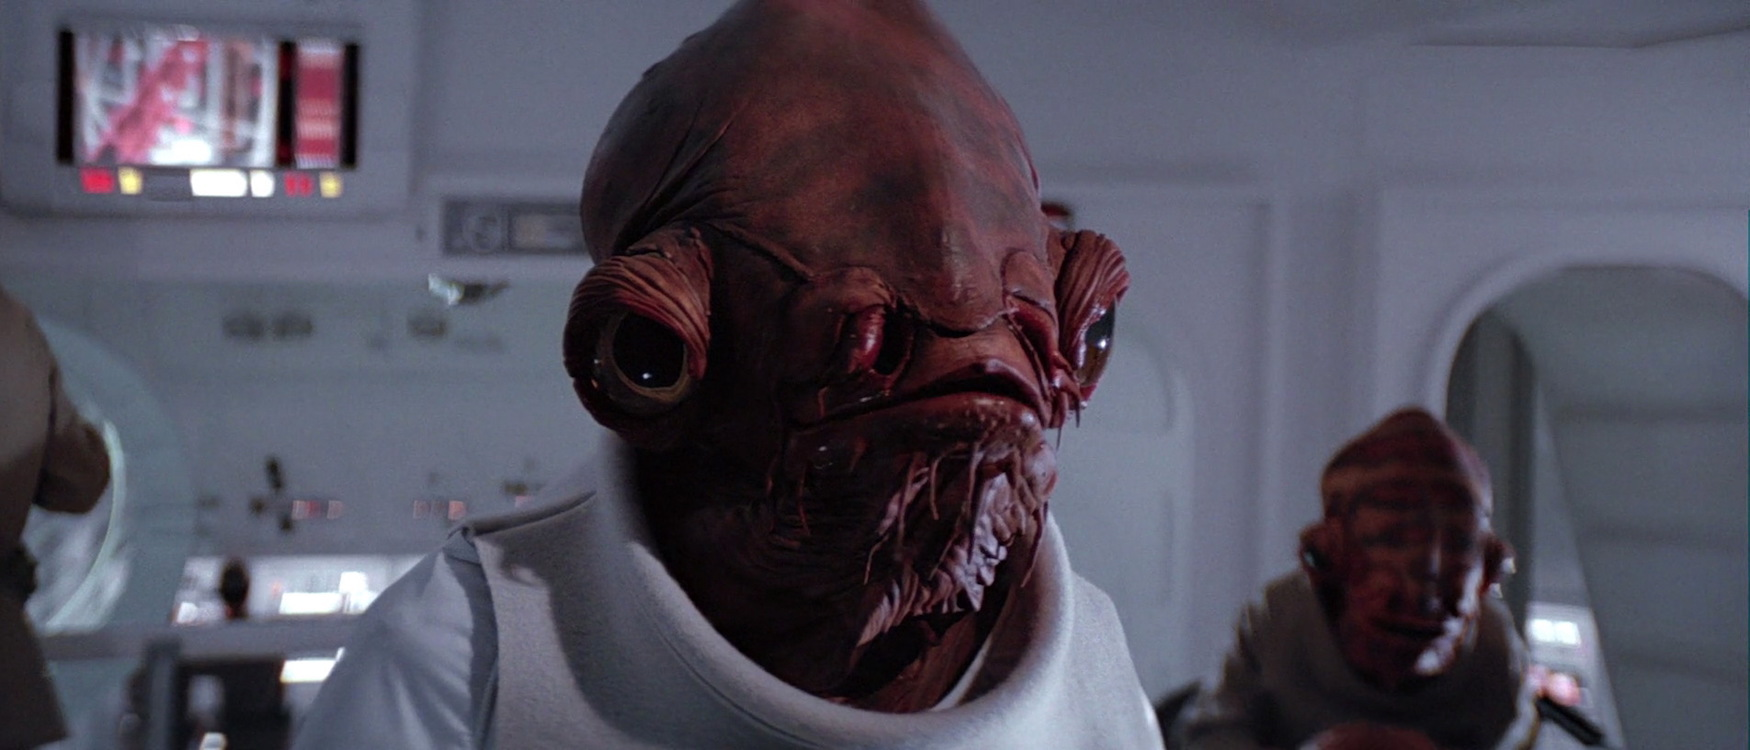 'Star Wars' Favorite Admiral Ackbar Has a Son – Could He Show Up in the Movies?